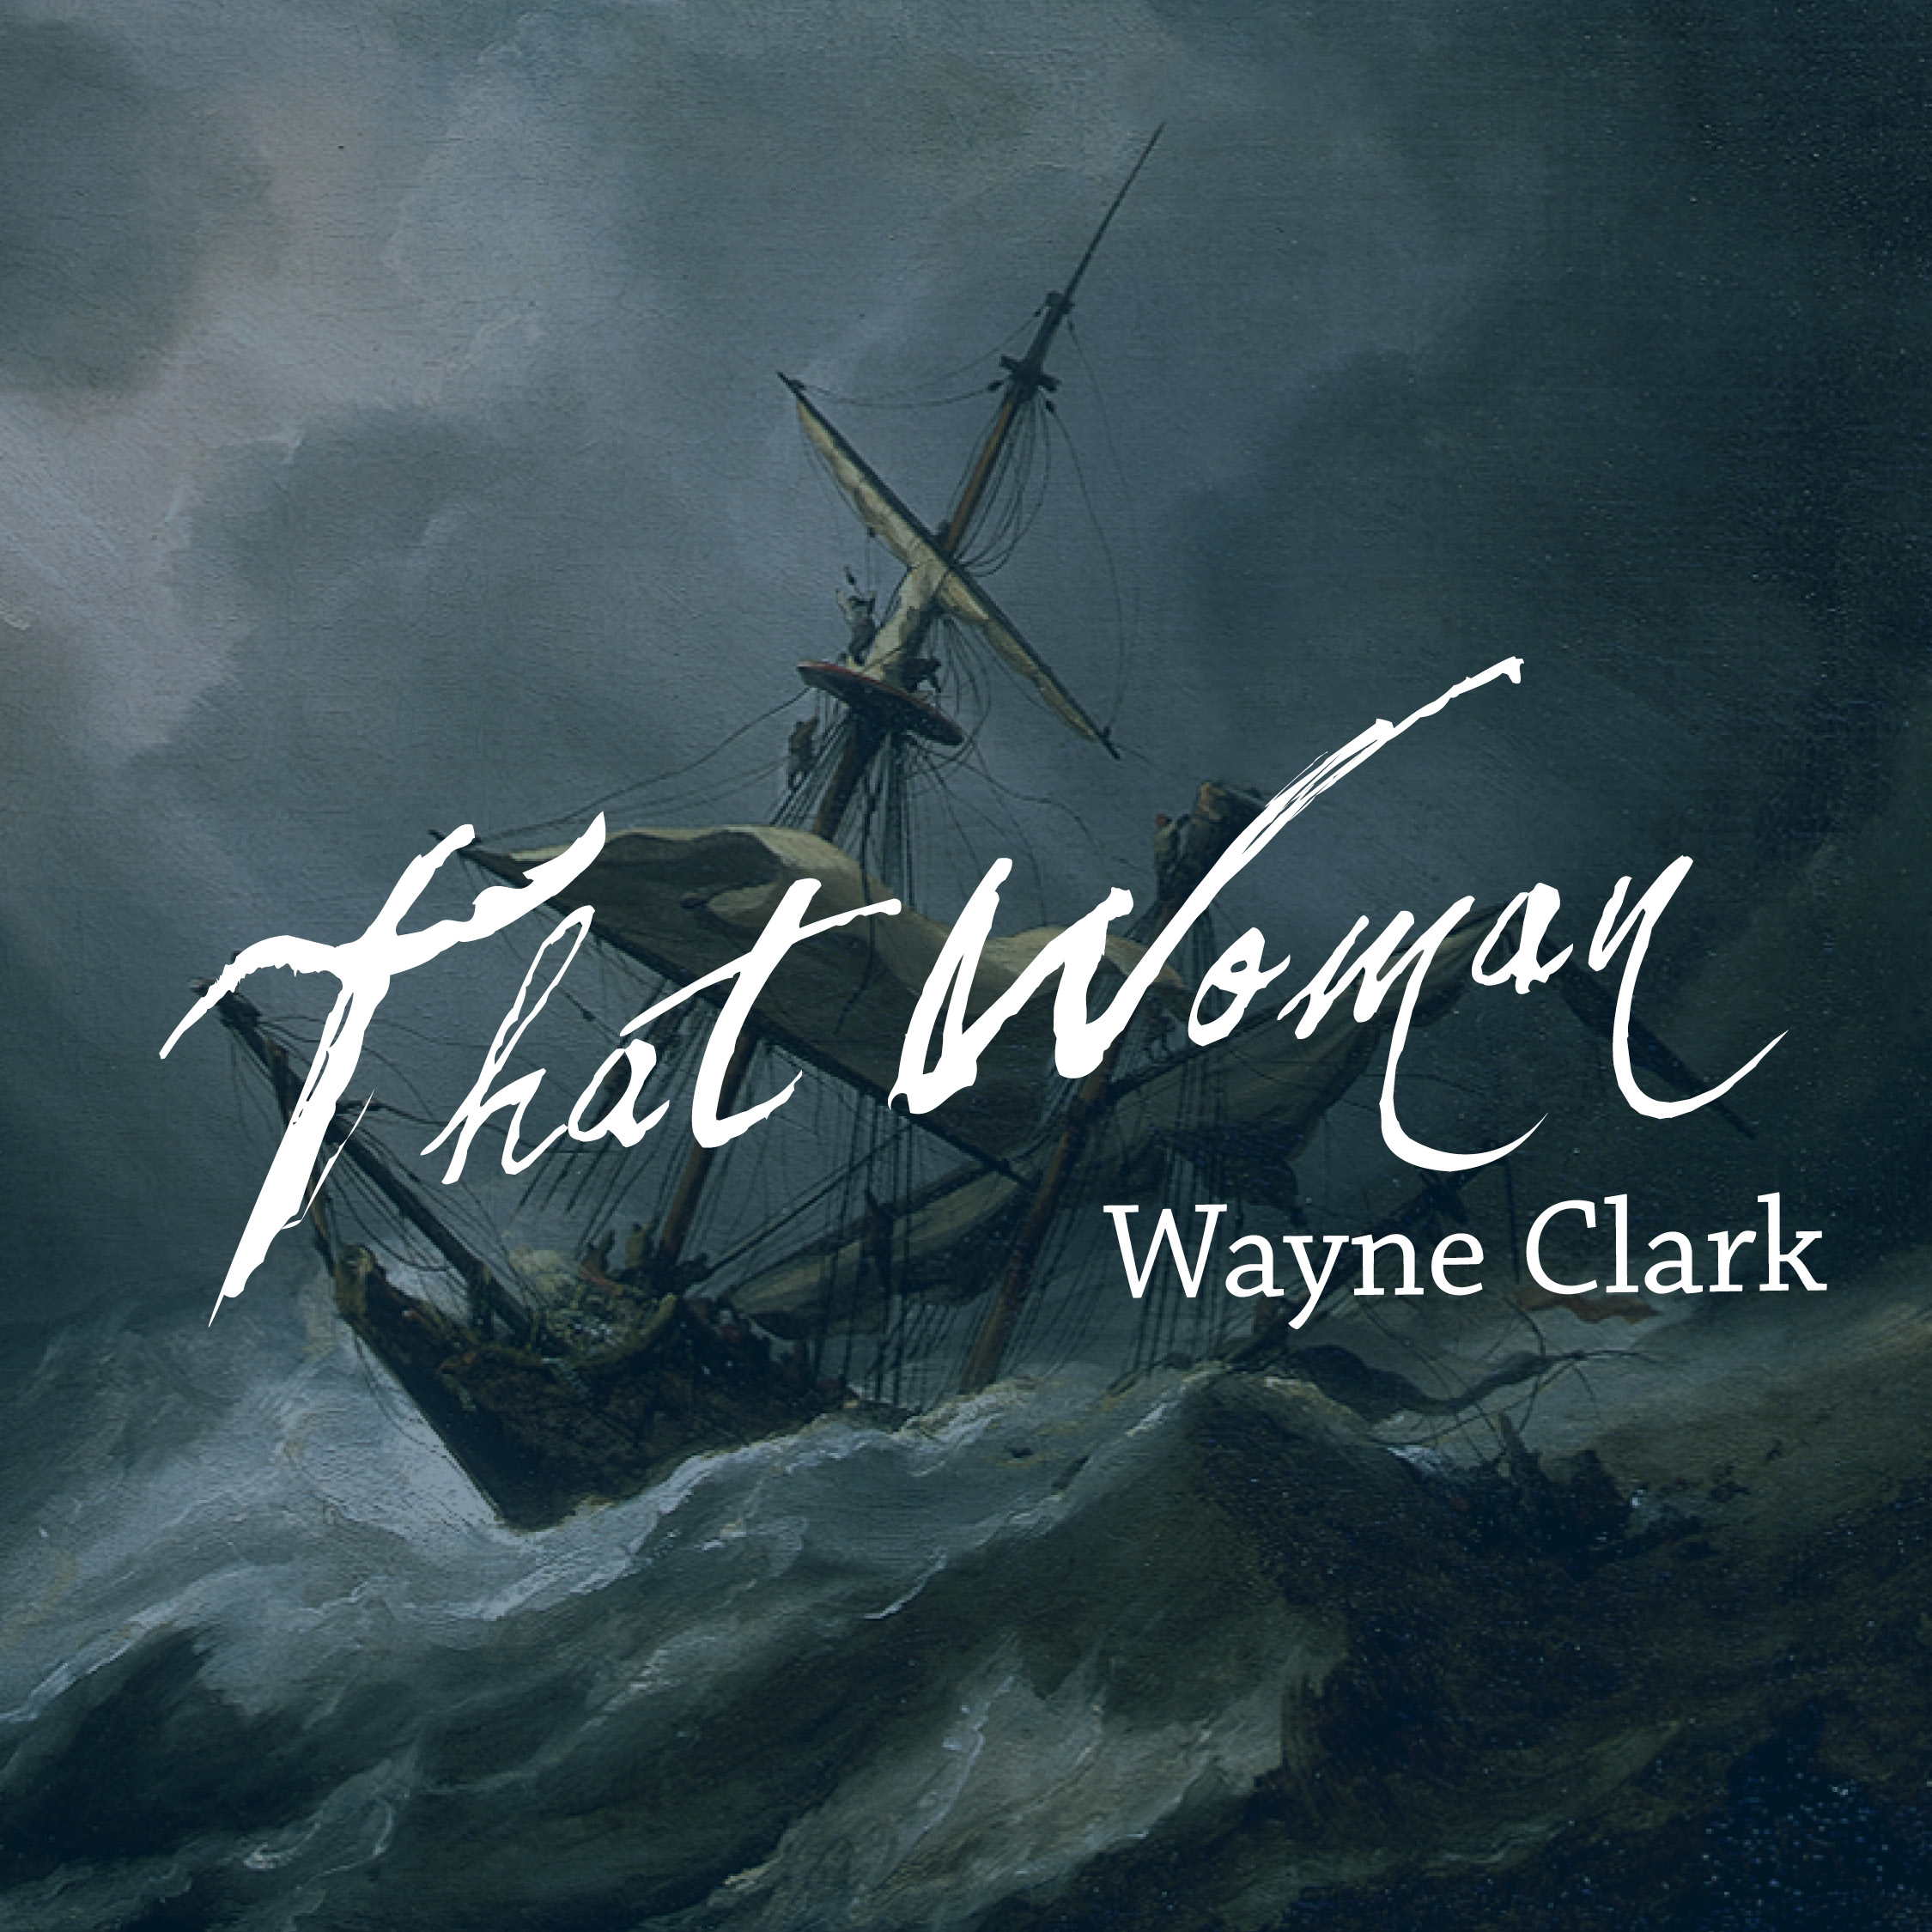 International Award Winning Author Wayne Clark Announces Release Of New Historical Fiction Novel, 'That Woman'